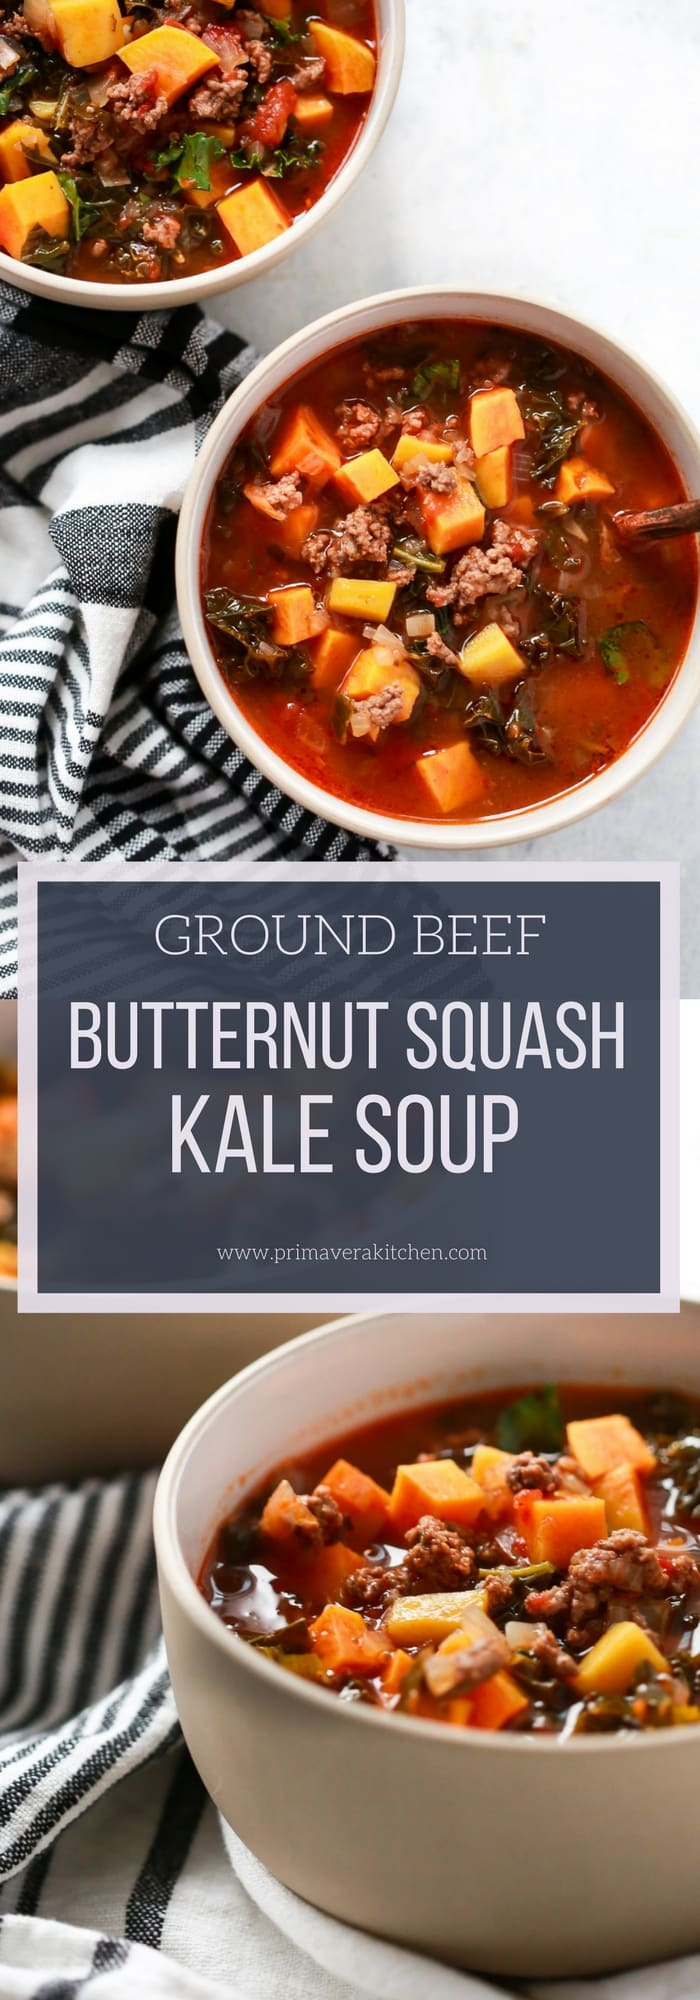 Ground Beef Butternut Squash Kale Soup - Primavera Kitchen